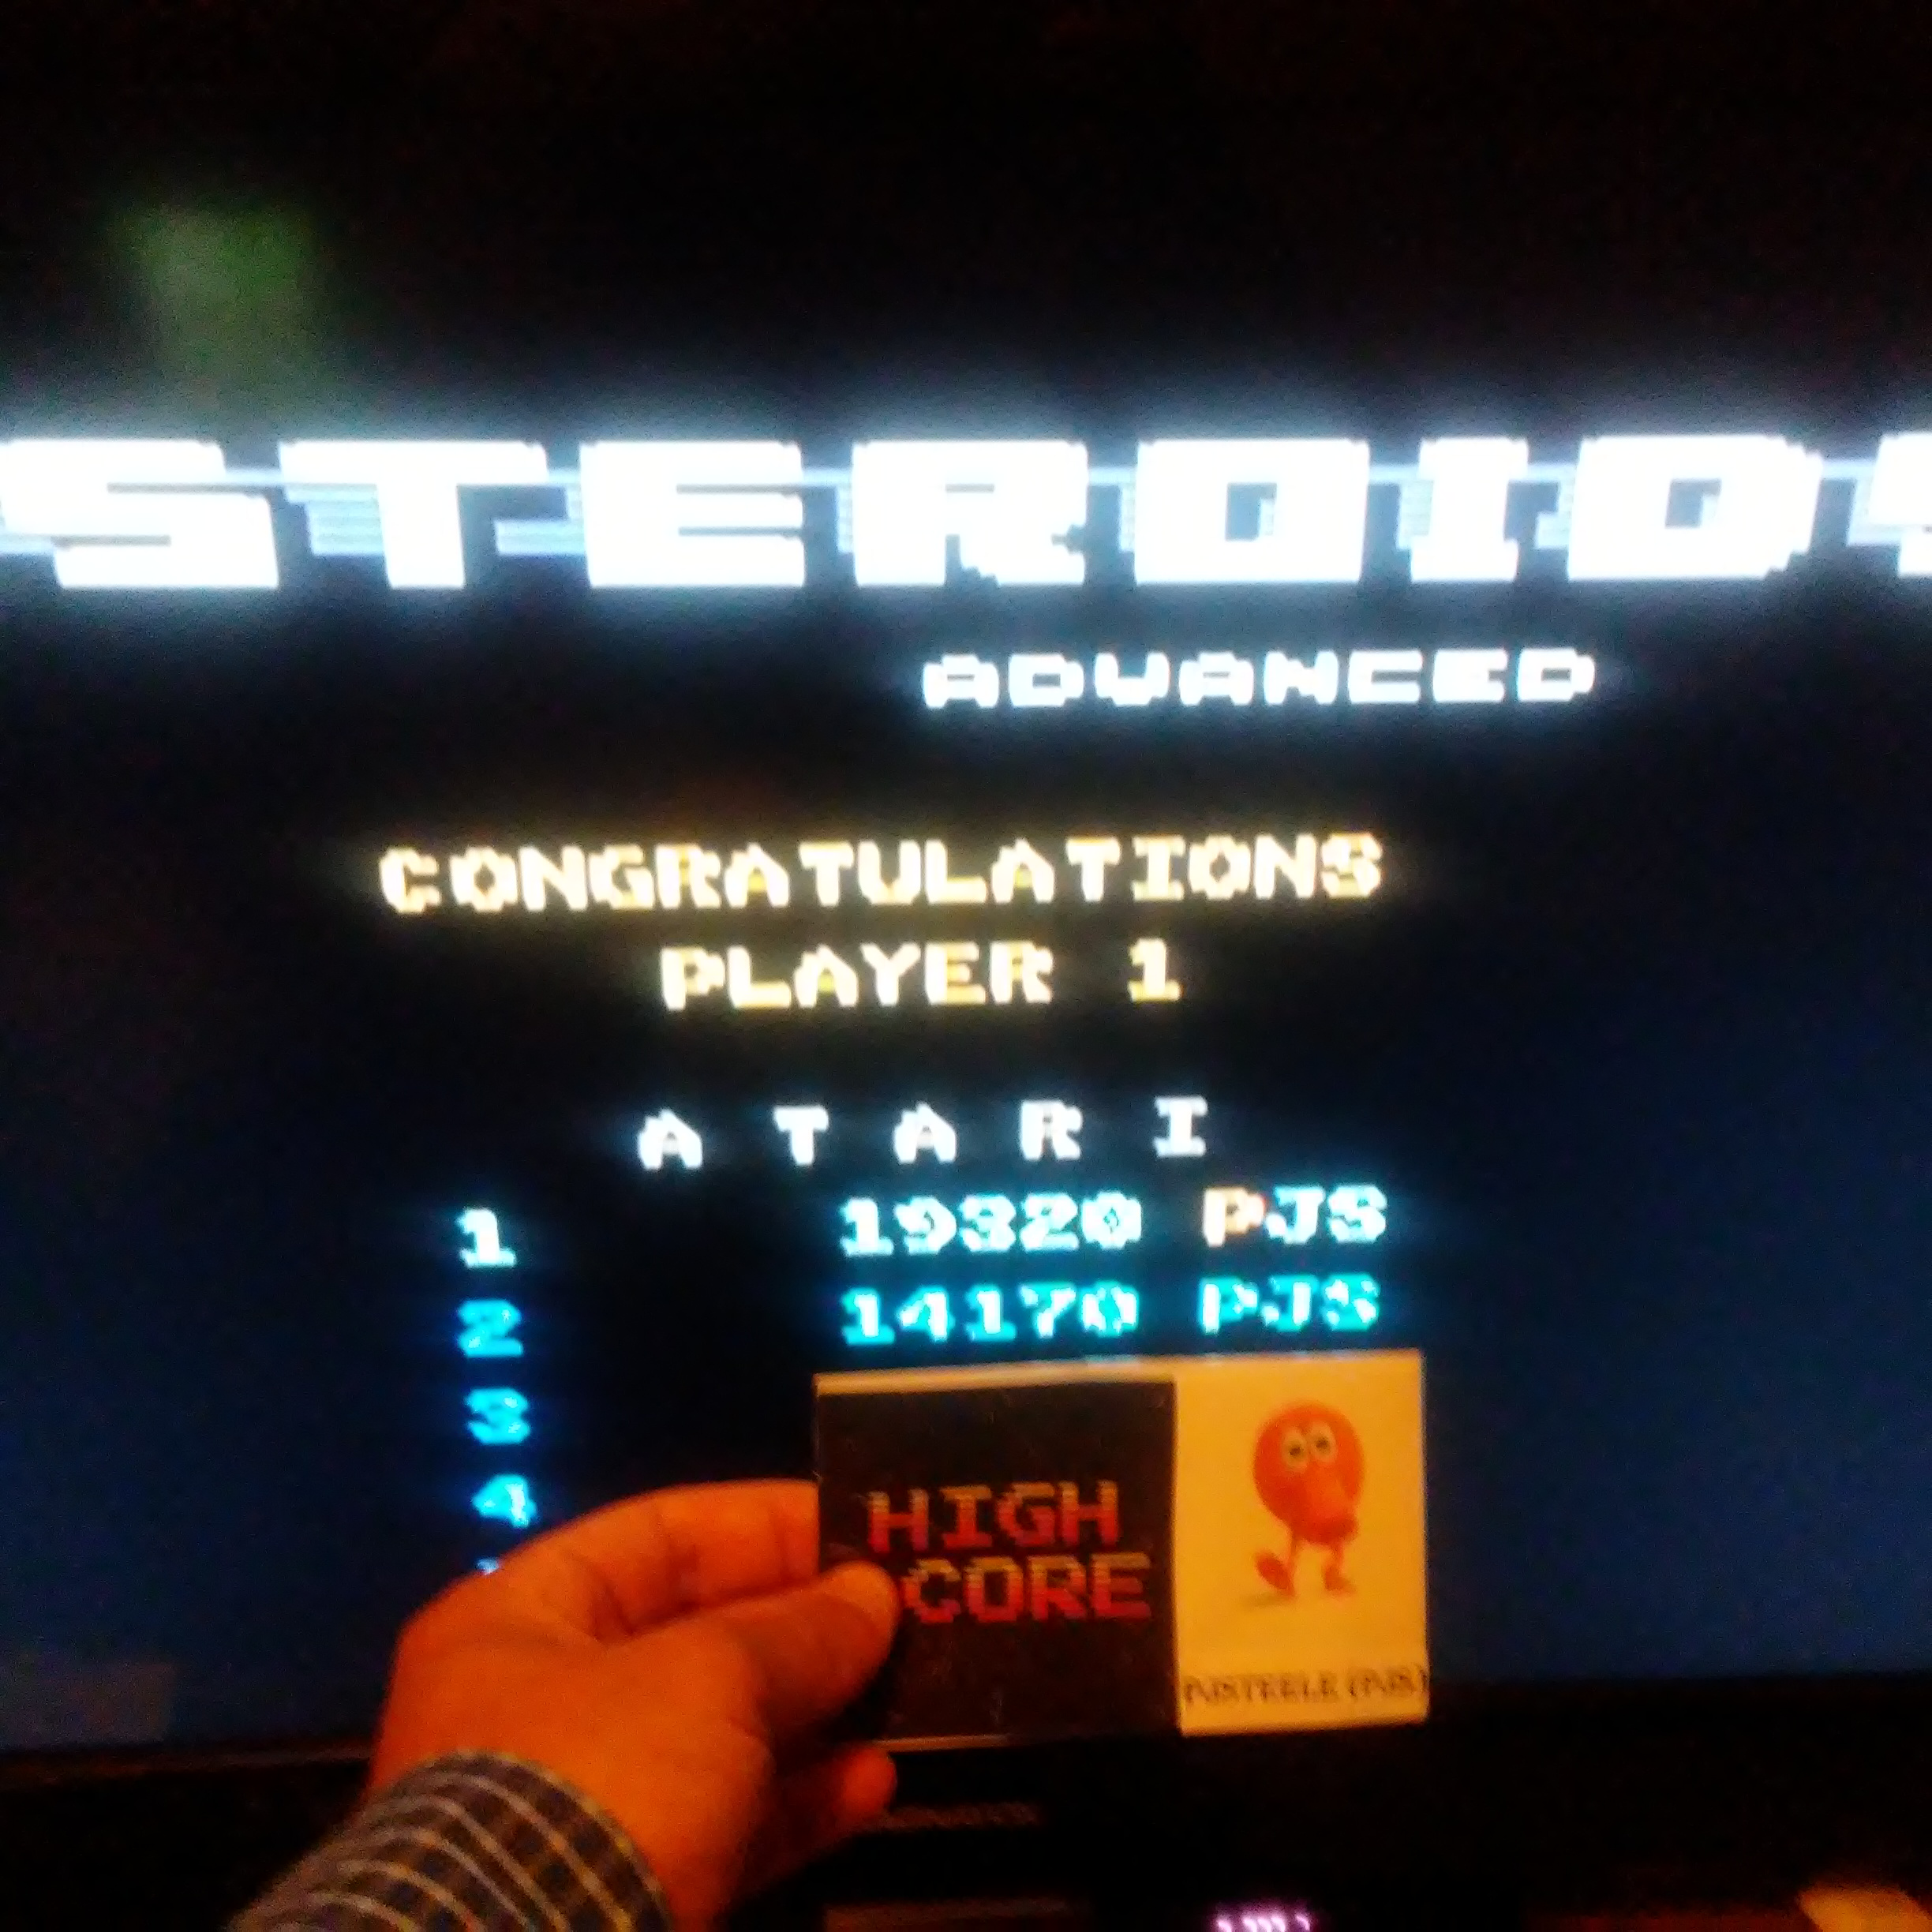 Pjsteele: Asteroids: Advanced (Atari 7800 Emulated) 19,320 points on 2017-07-21 18:35:58